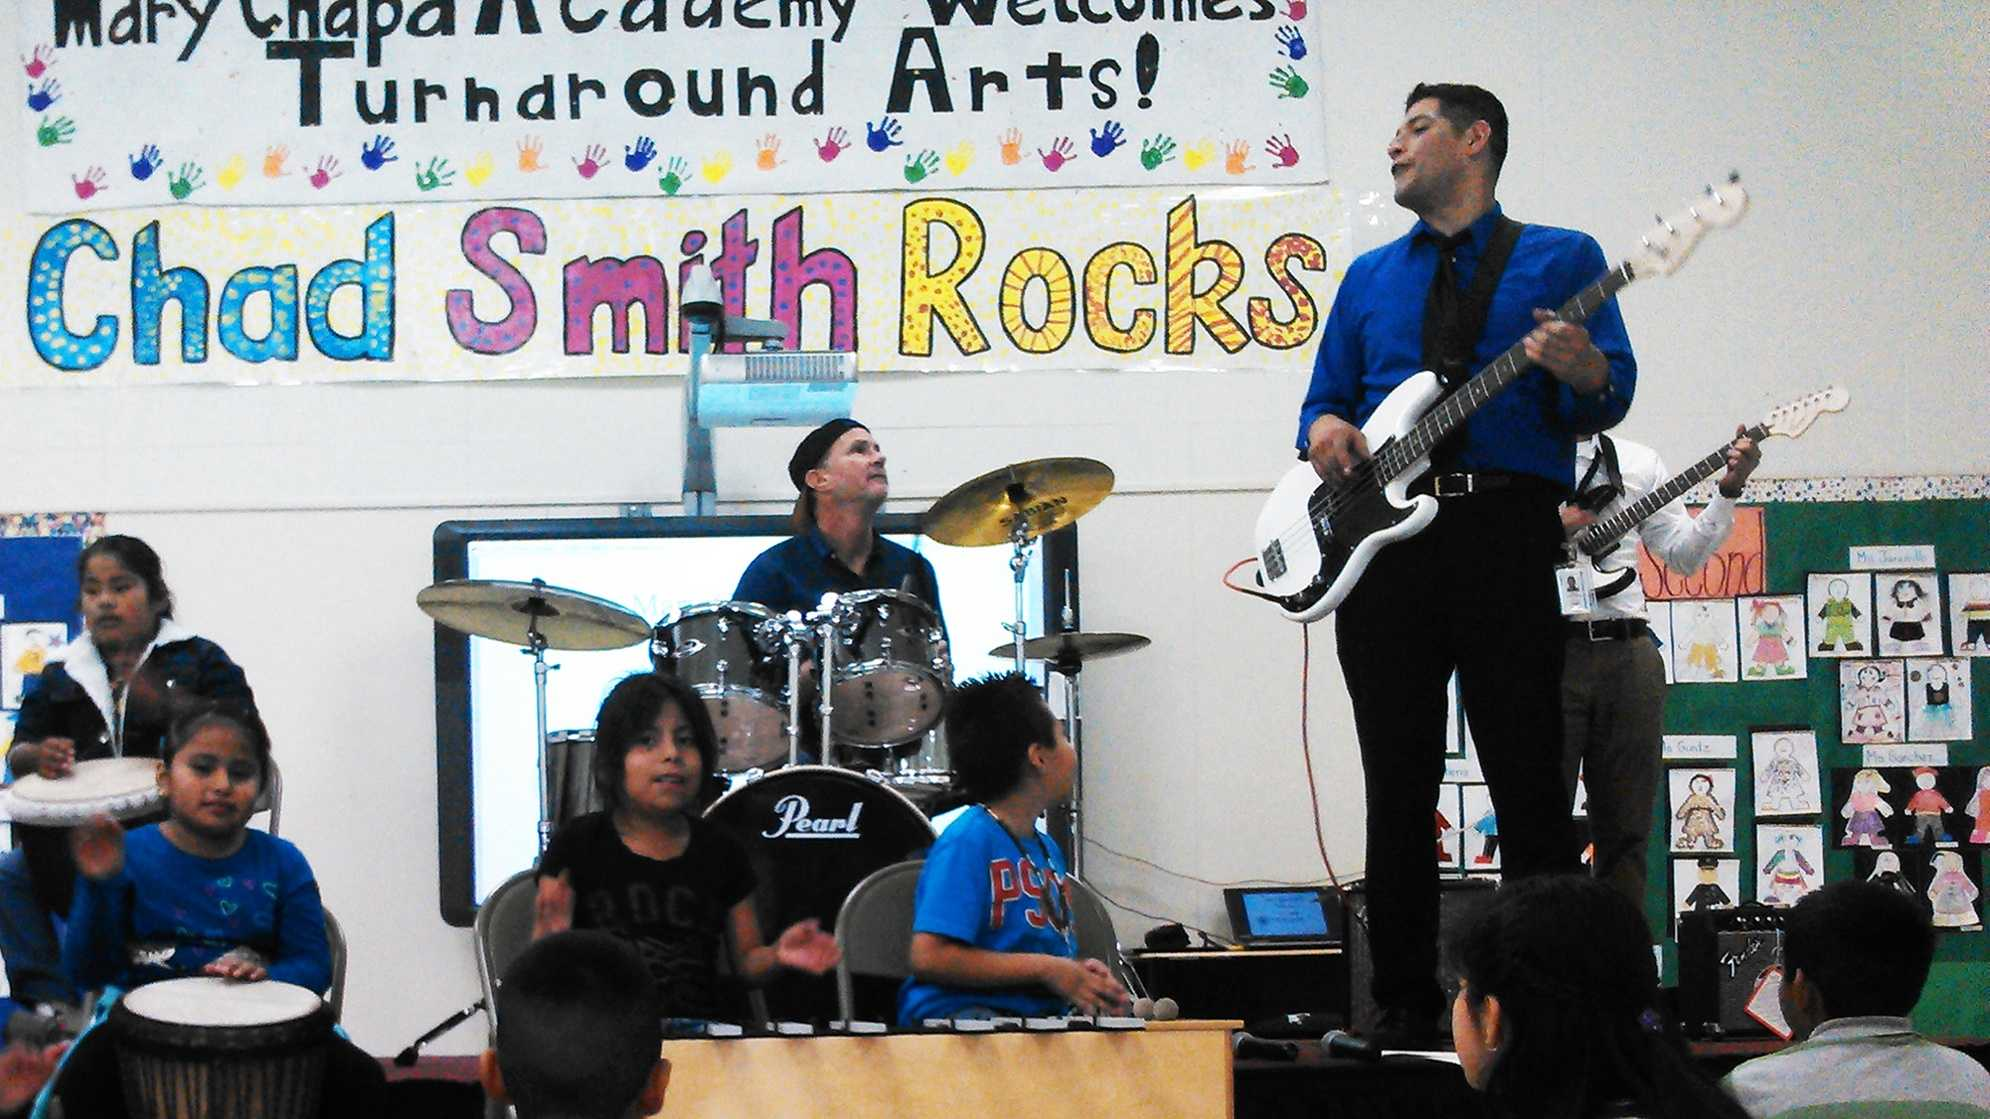 Chad Smith, Red Hot Chili Peppers drummer, plays at Mary Chapa Academy in Greenfield Thursday.